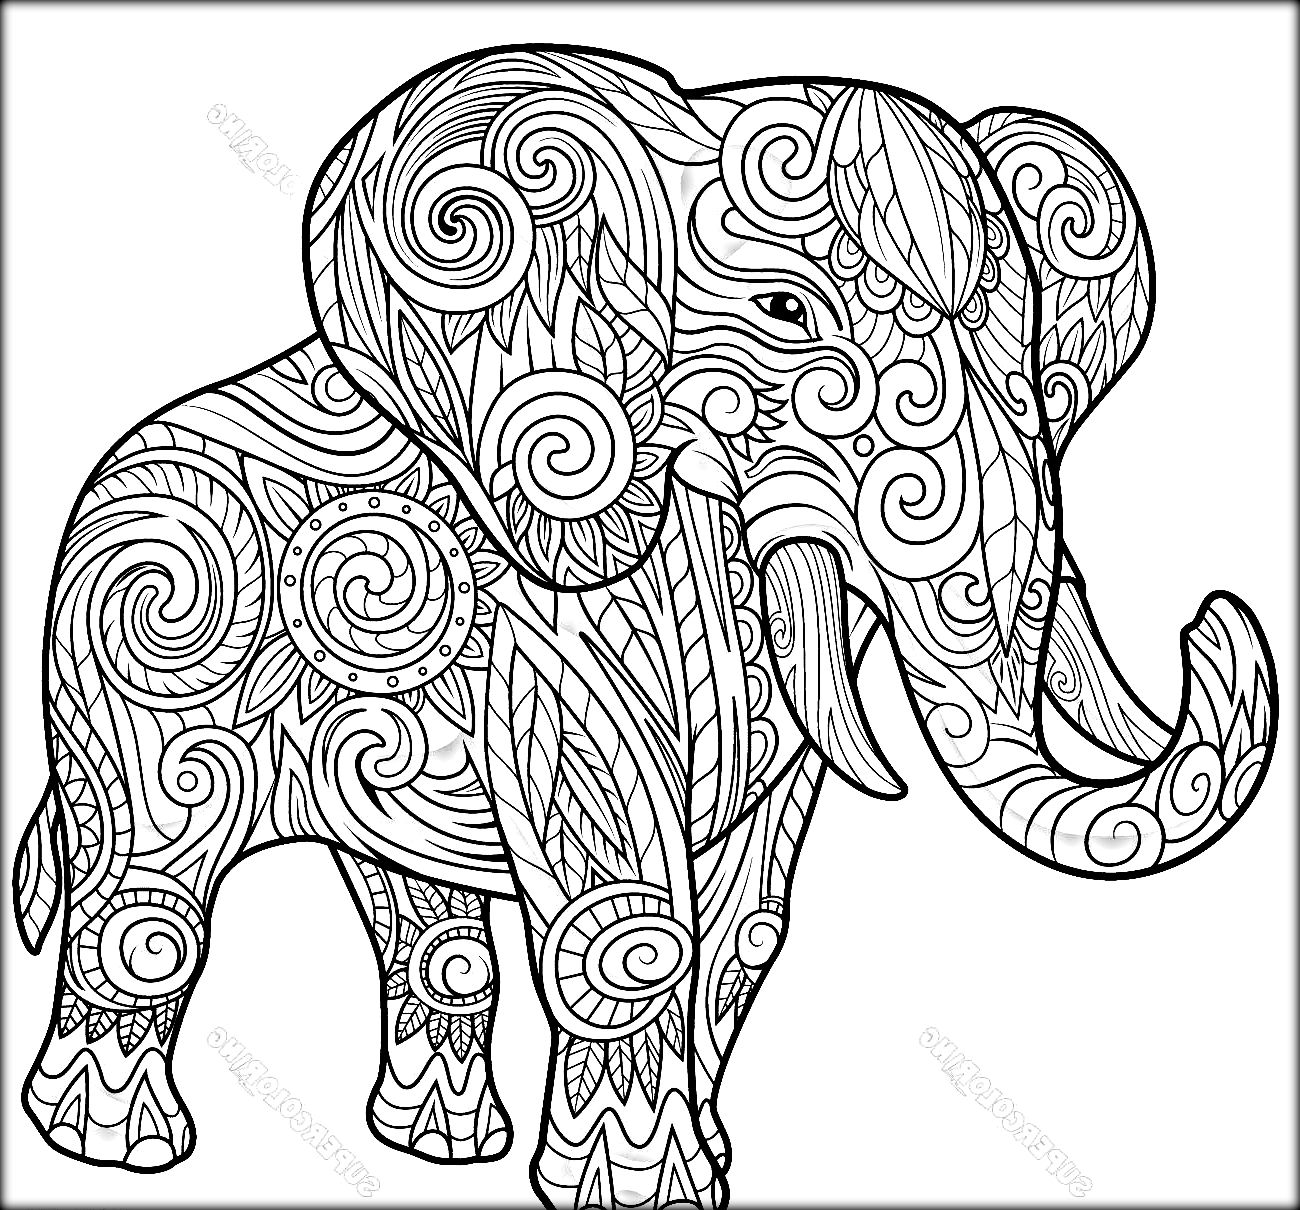 1300x1210 Elephant Coloring Pages Printable For Adults Preschool Good Page